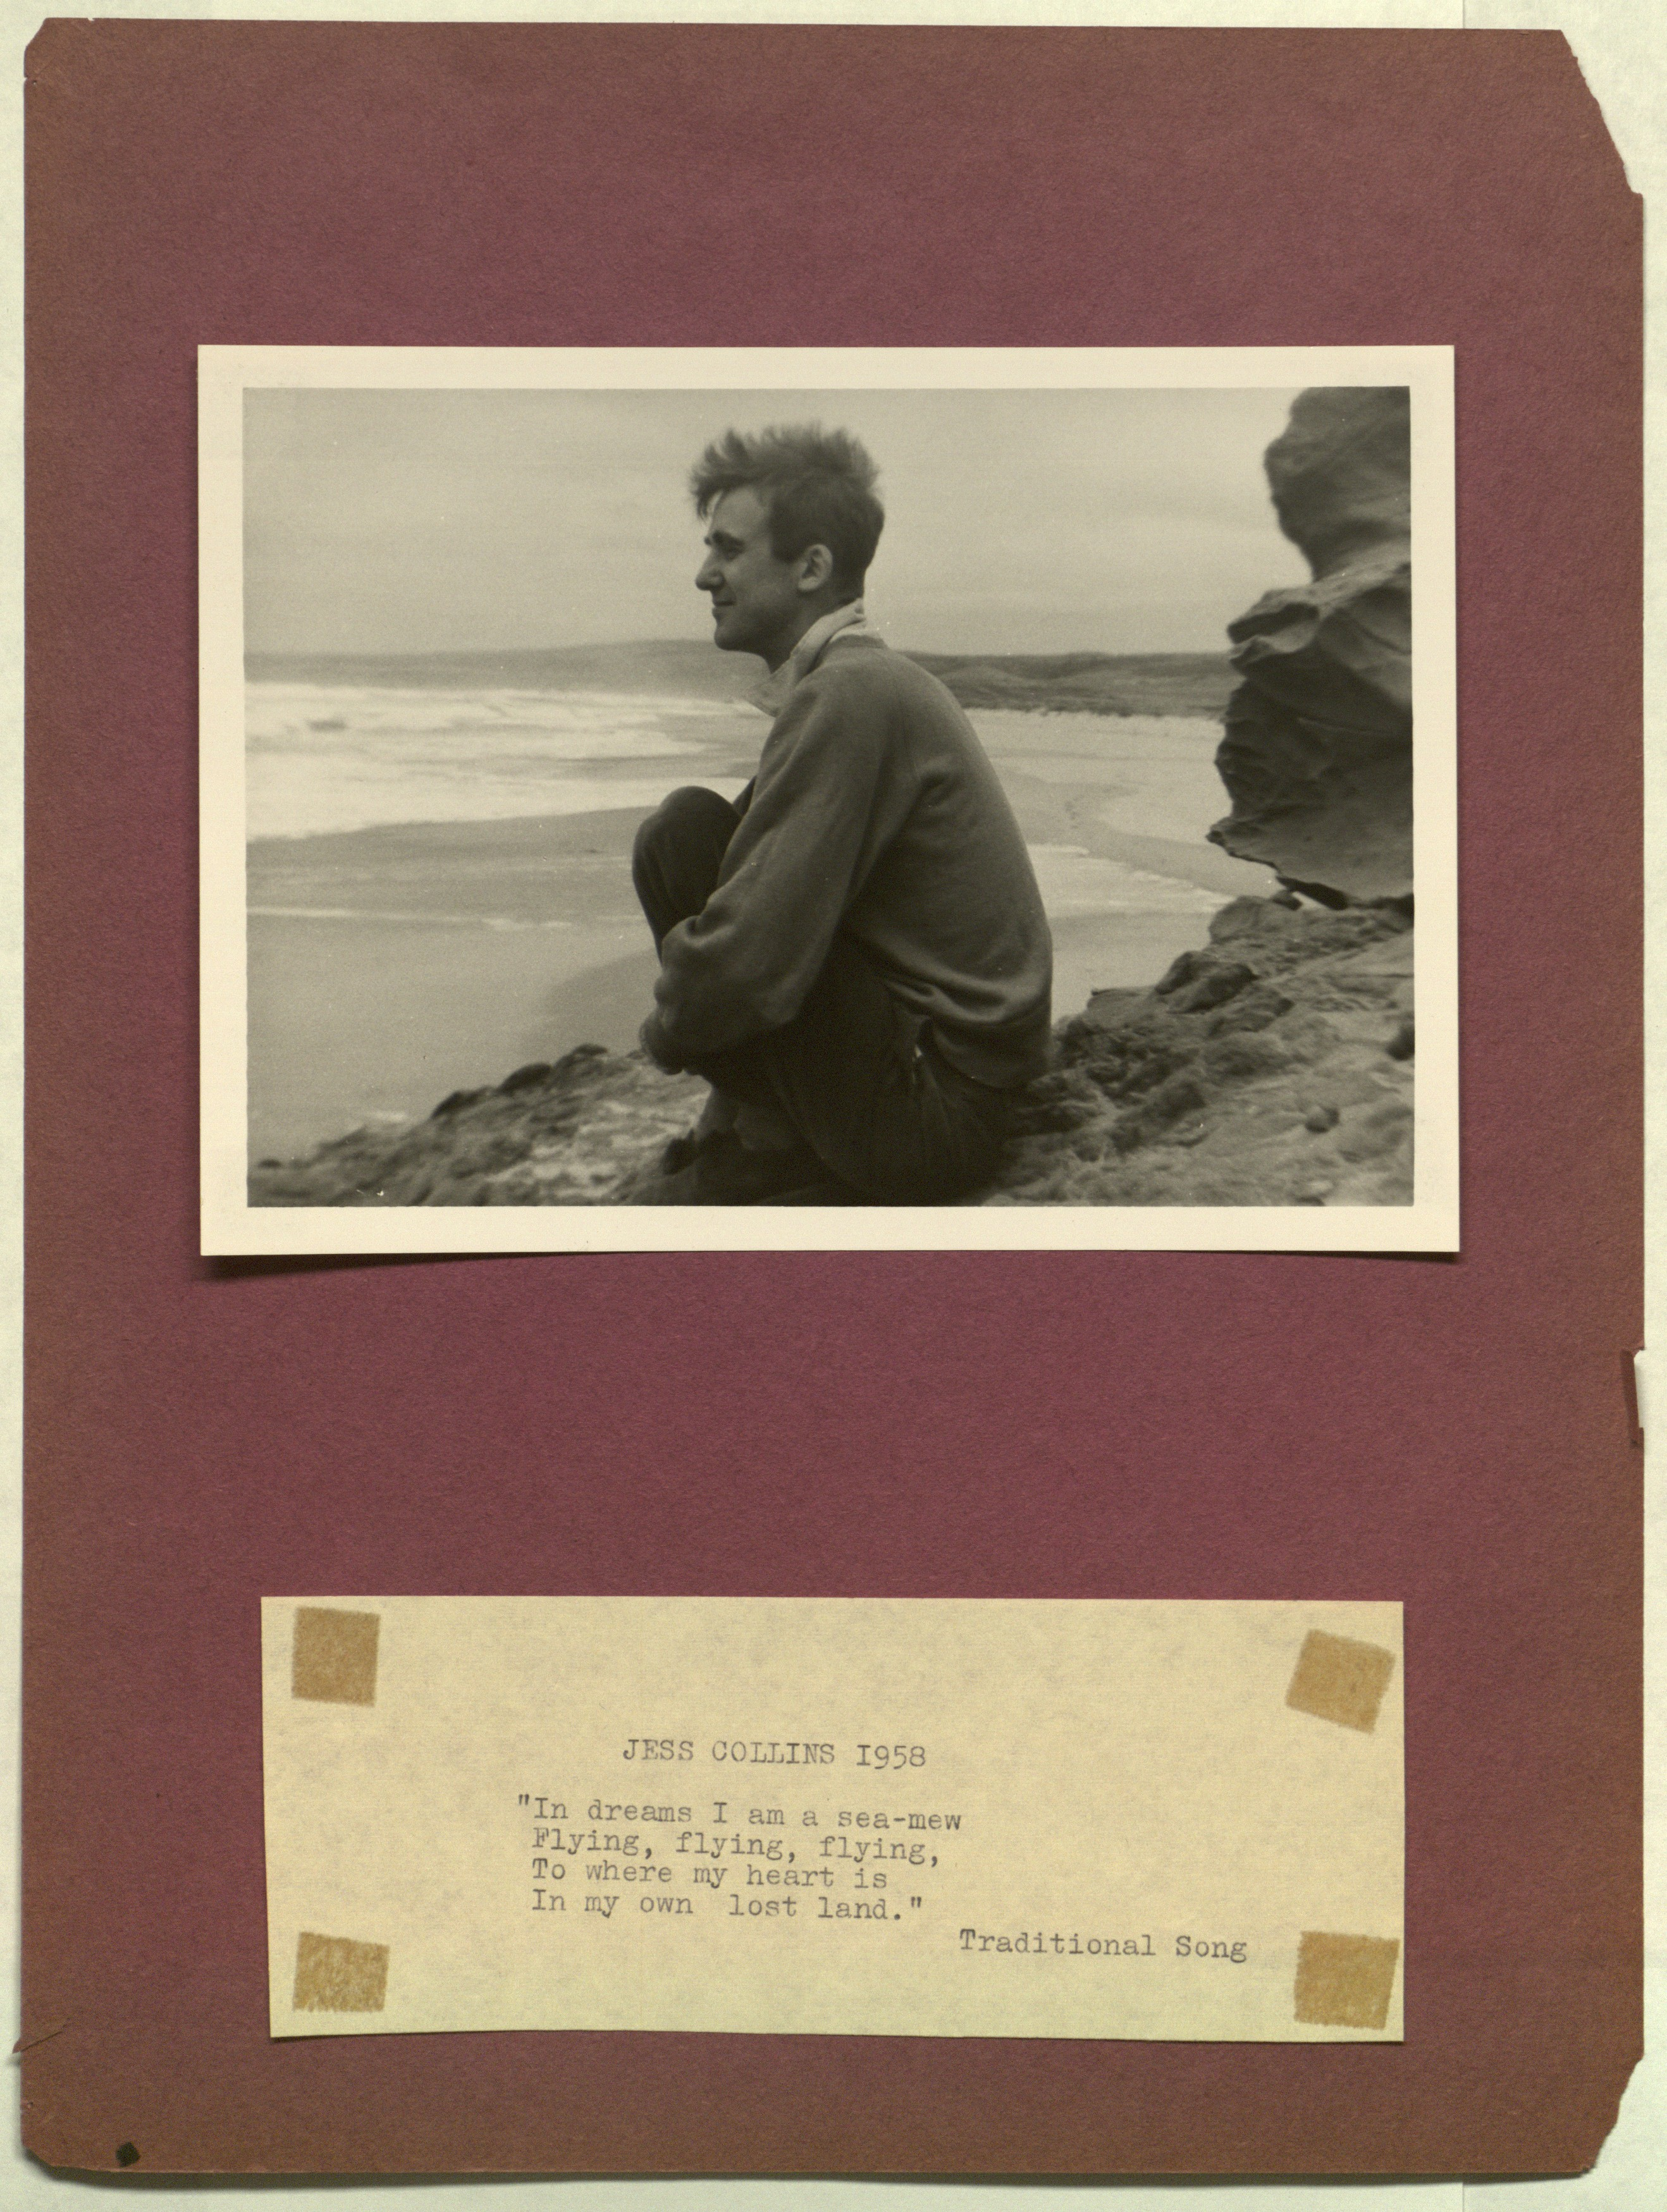 "An image of a man in profile staring into the sea. Below, the words: ""JESS COLLINS 1958 // 'In dreams I am a sea-mew / Flying, flying, flying, / To where my heart is / In my own lost land.' / Traditional Song."""